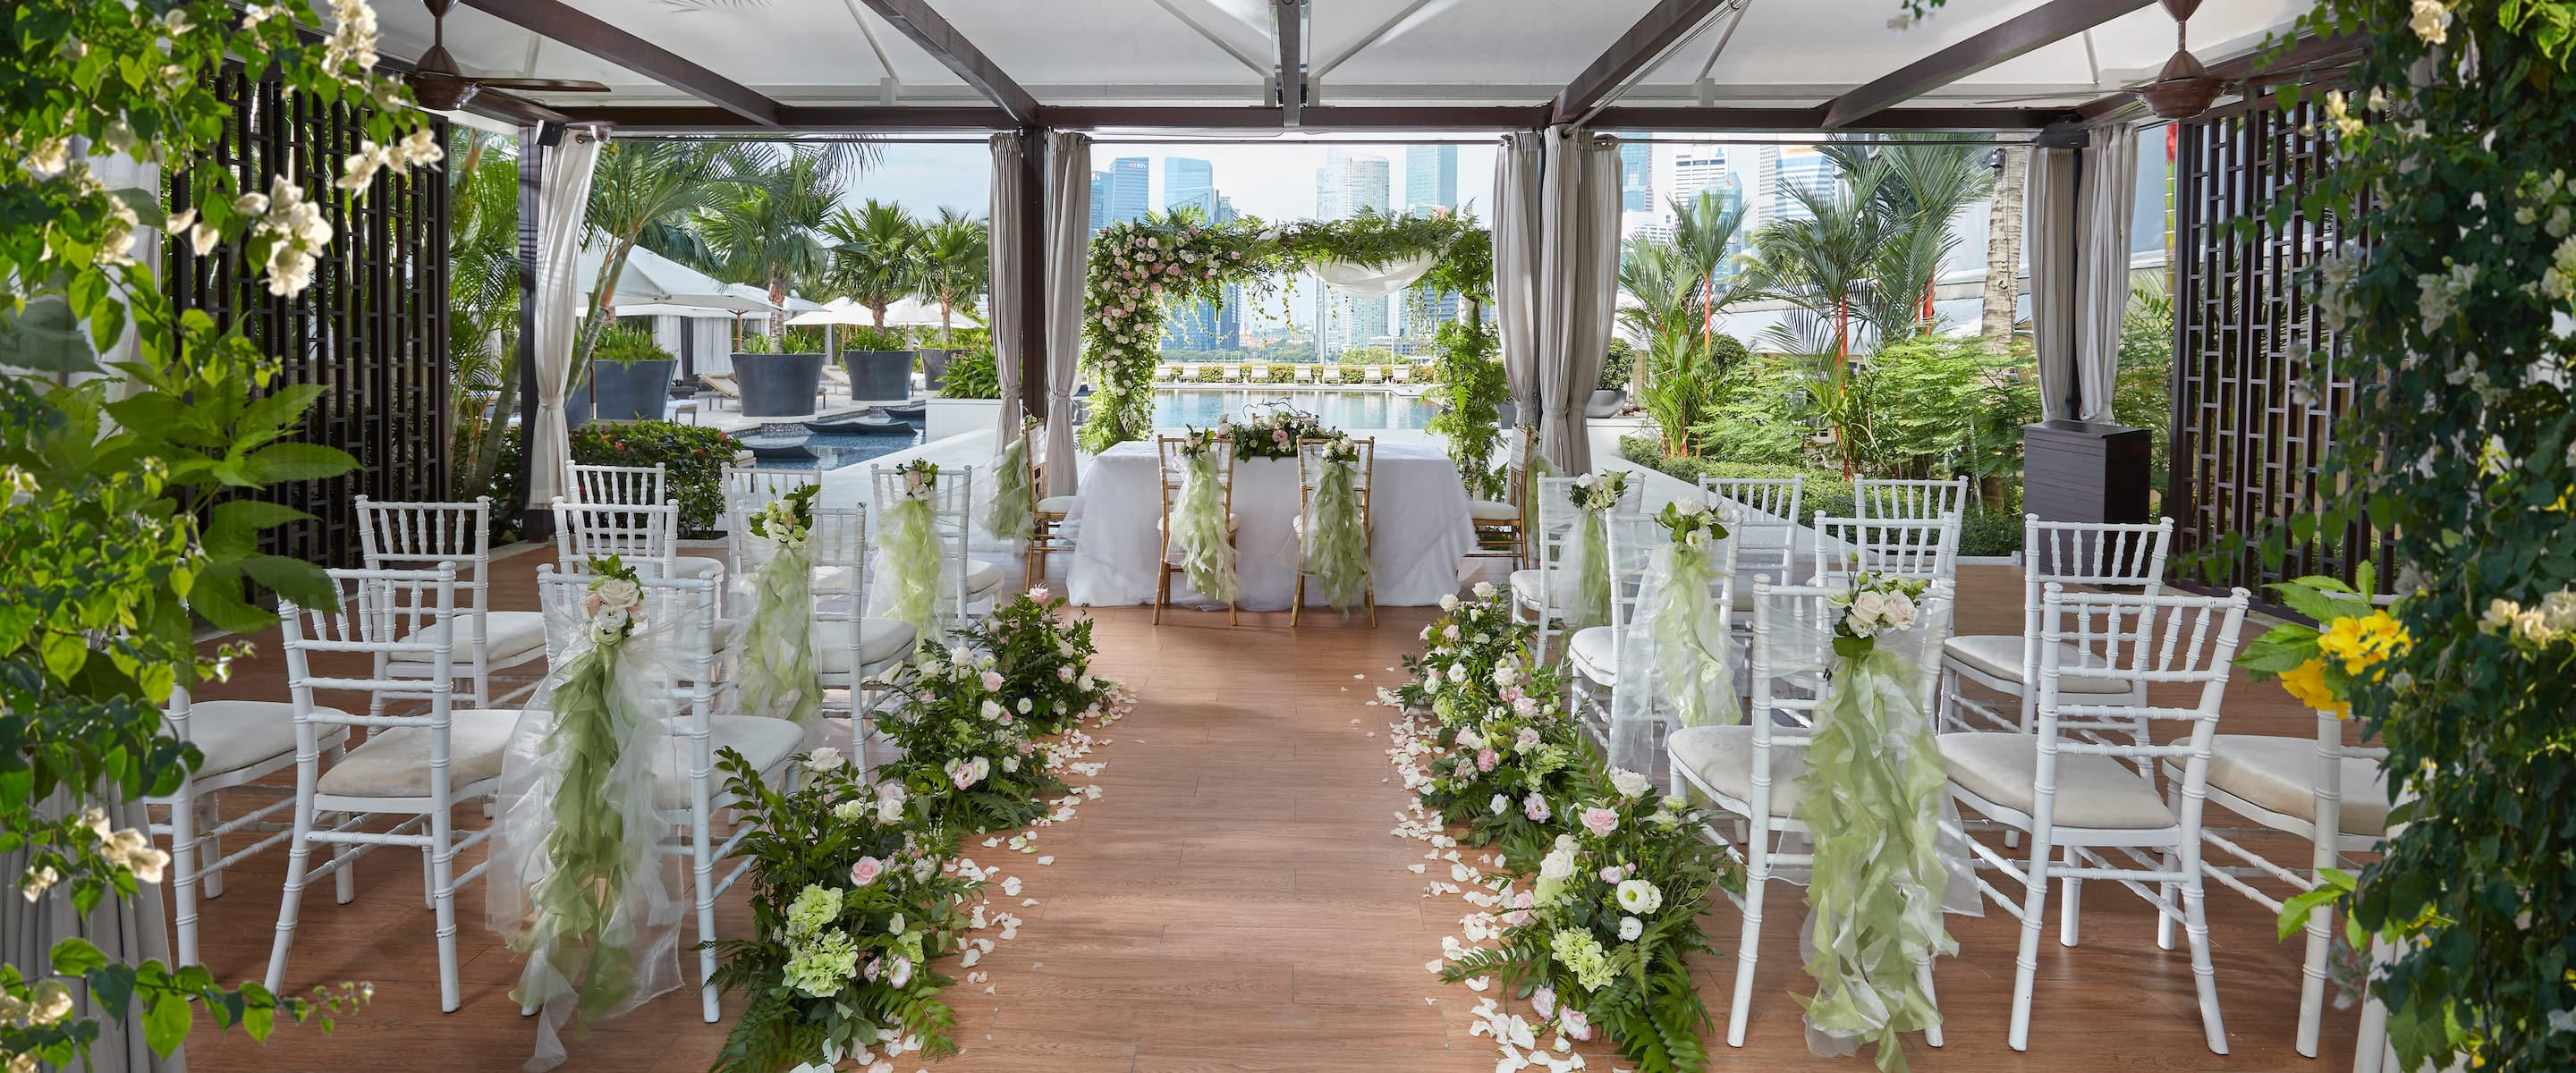 Luxury Wedding Reception Venue Marina Bay Hotel Mandarin Oriental Singapore